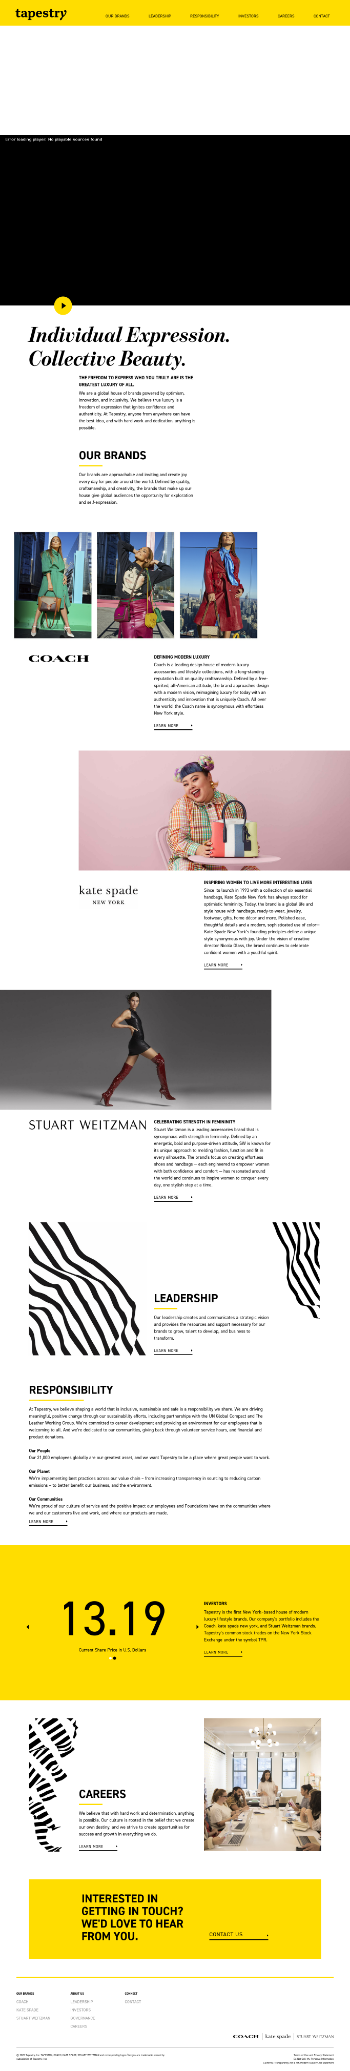 Tapestry, Inc. Website Screenshot